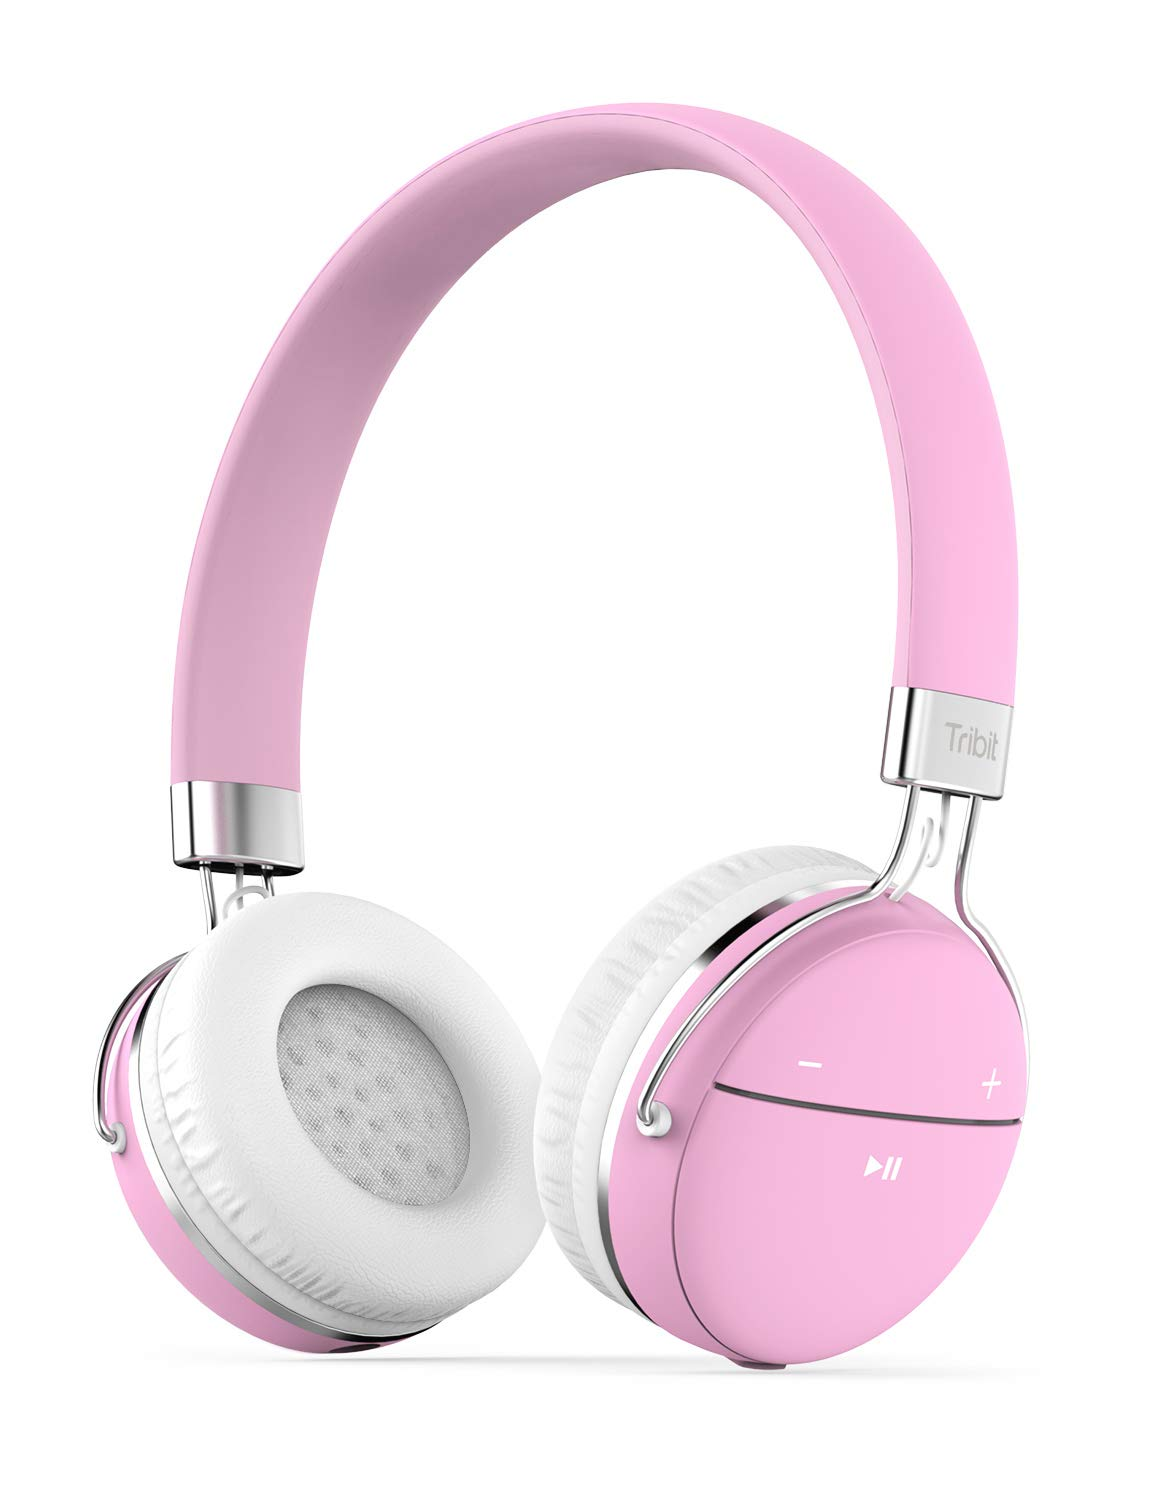 Tribit Xfree Move Bluetooth Headphones with MIC - Wireless Headphones for Girls, Dual Modes Long Playtime Hi-Fi Stereo Sound with Rich Bass Lightweight - Headphones for Women, Carnation Pink